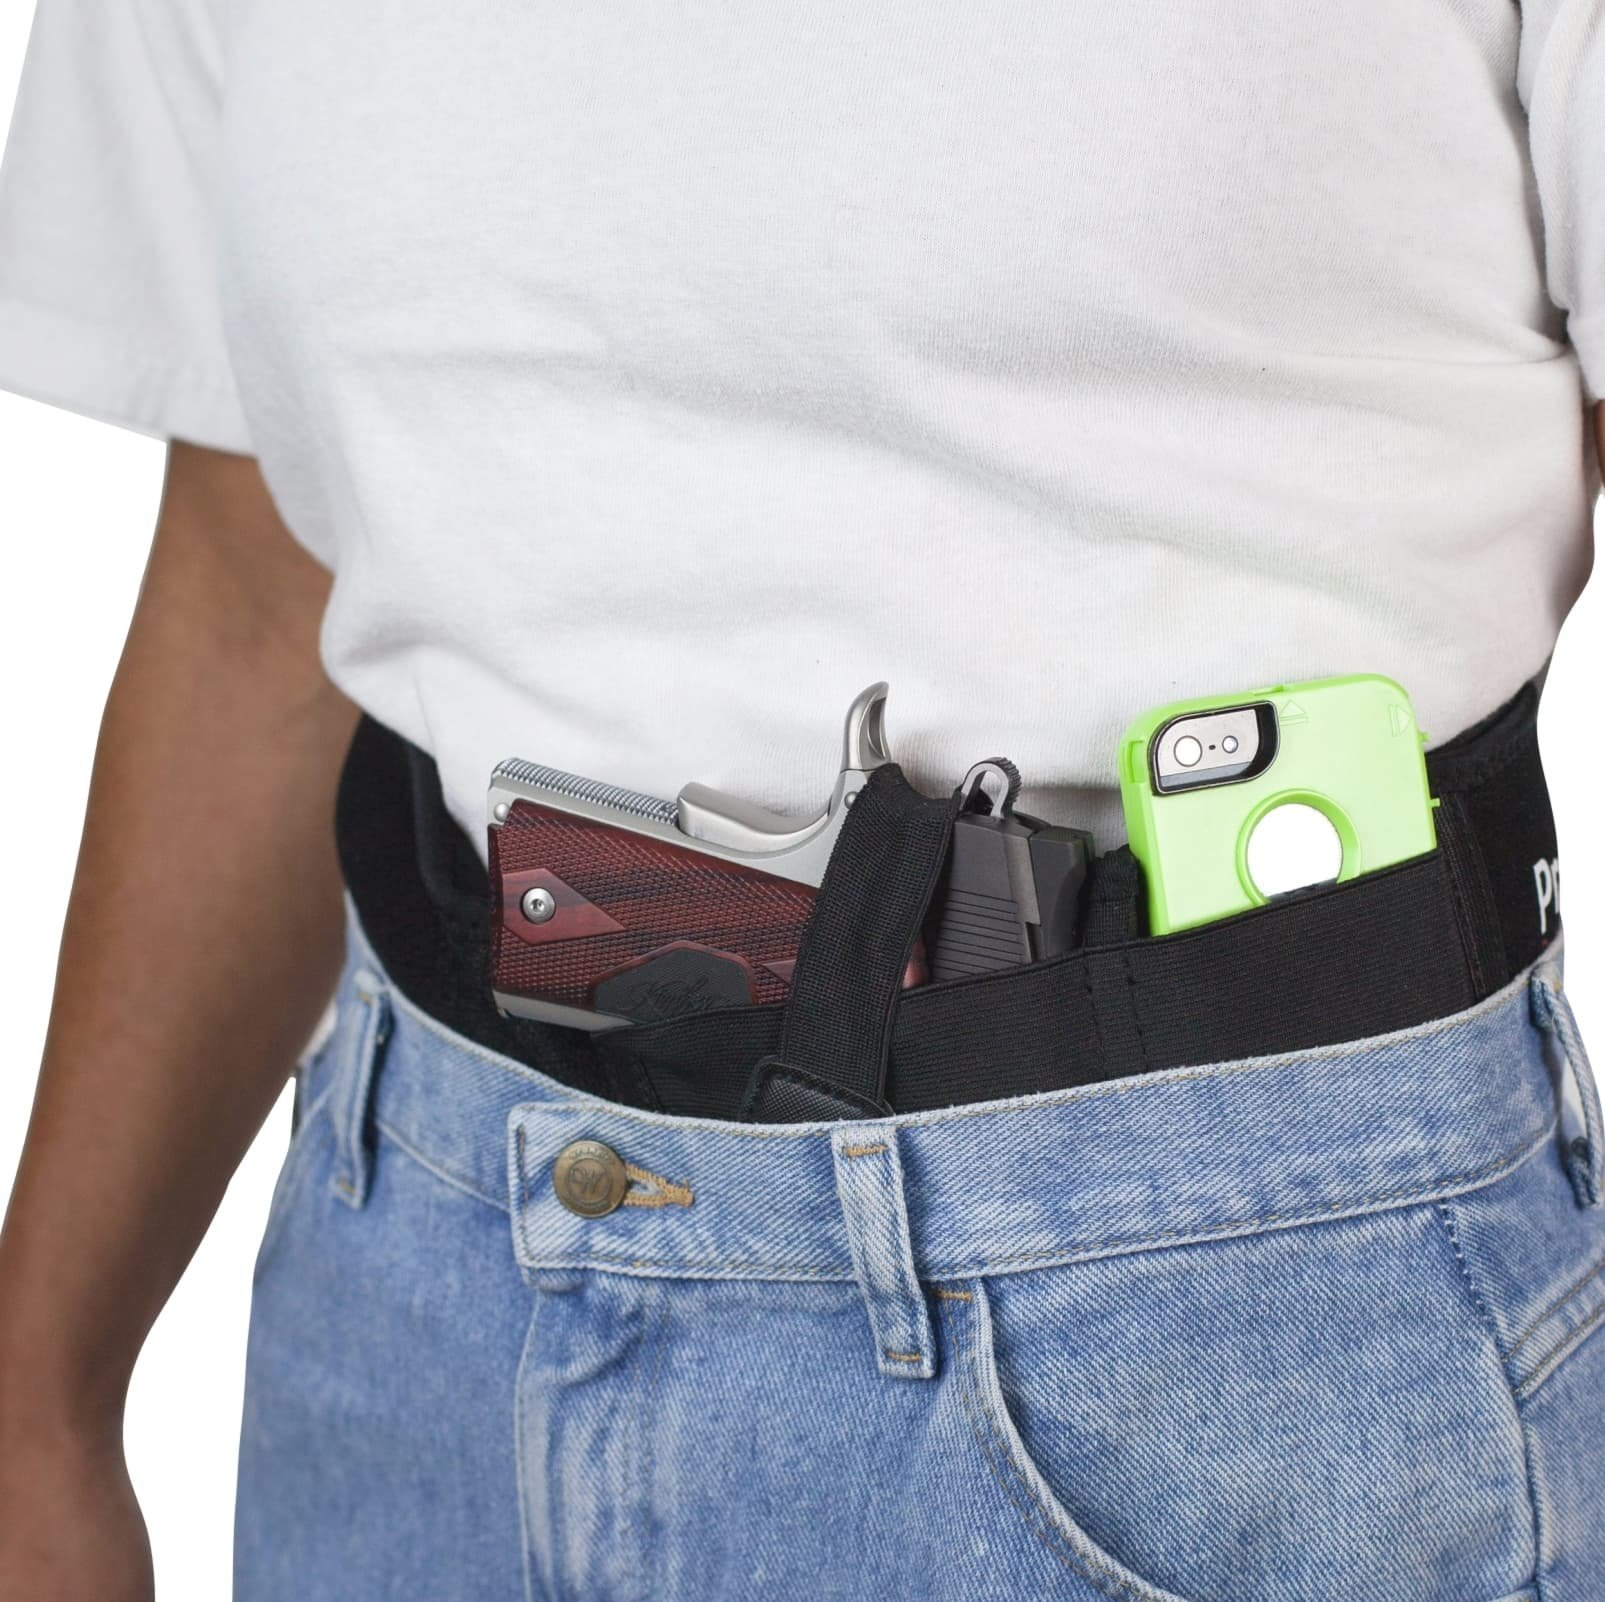 ProCore Belly Band Holster For Concealed Carry Waistband CCW Pistol Handgun Magazine Holder